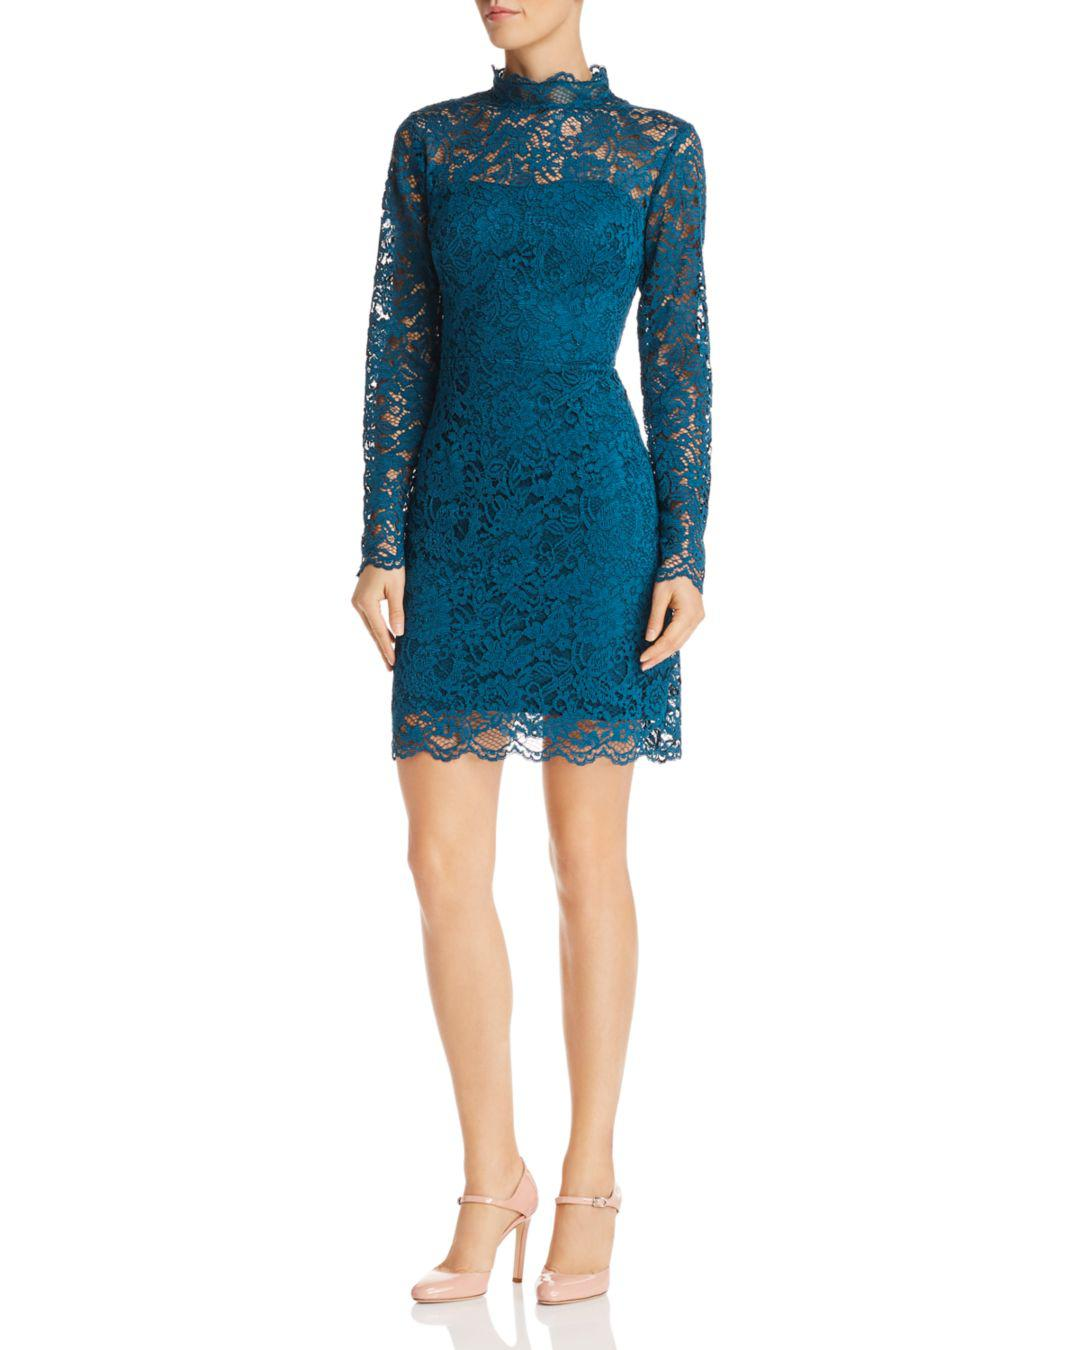 fb0e4d6297a Lyst - Betsey Johnson Lace Cocktail Dress in Blue